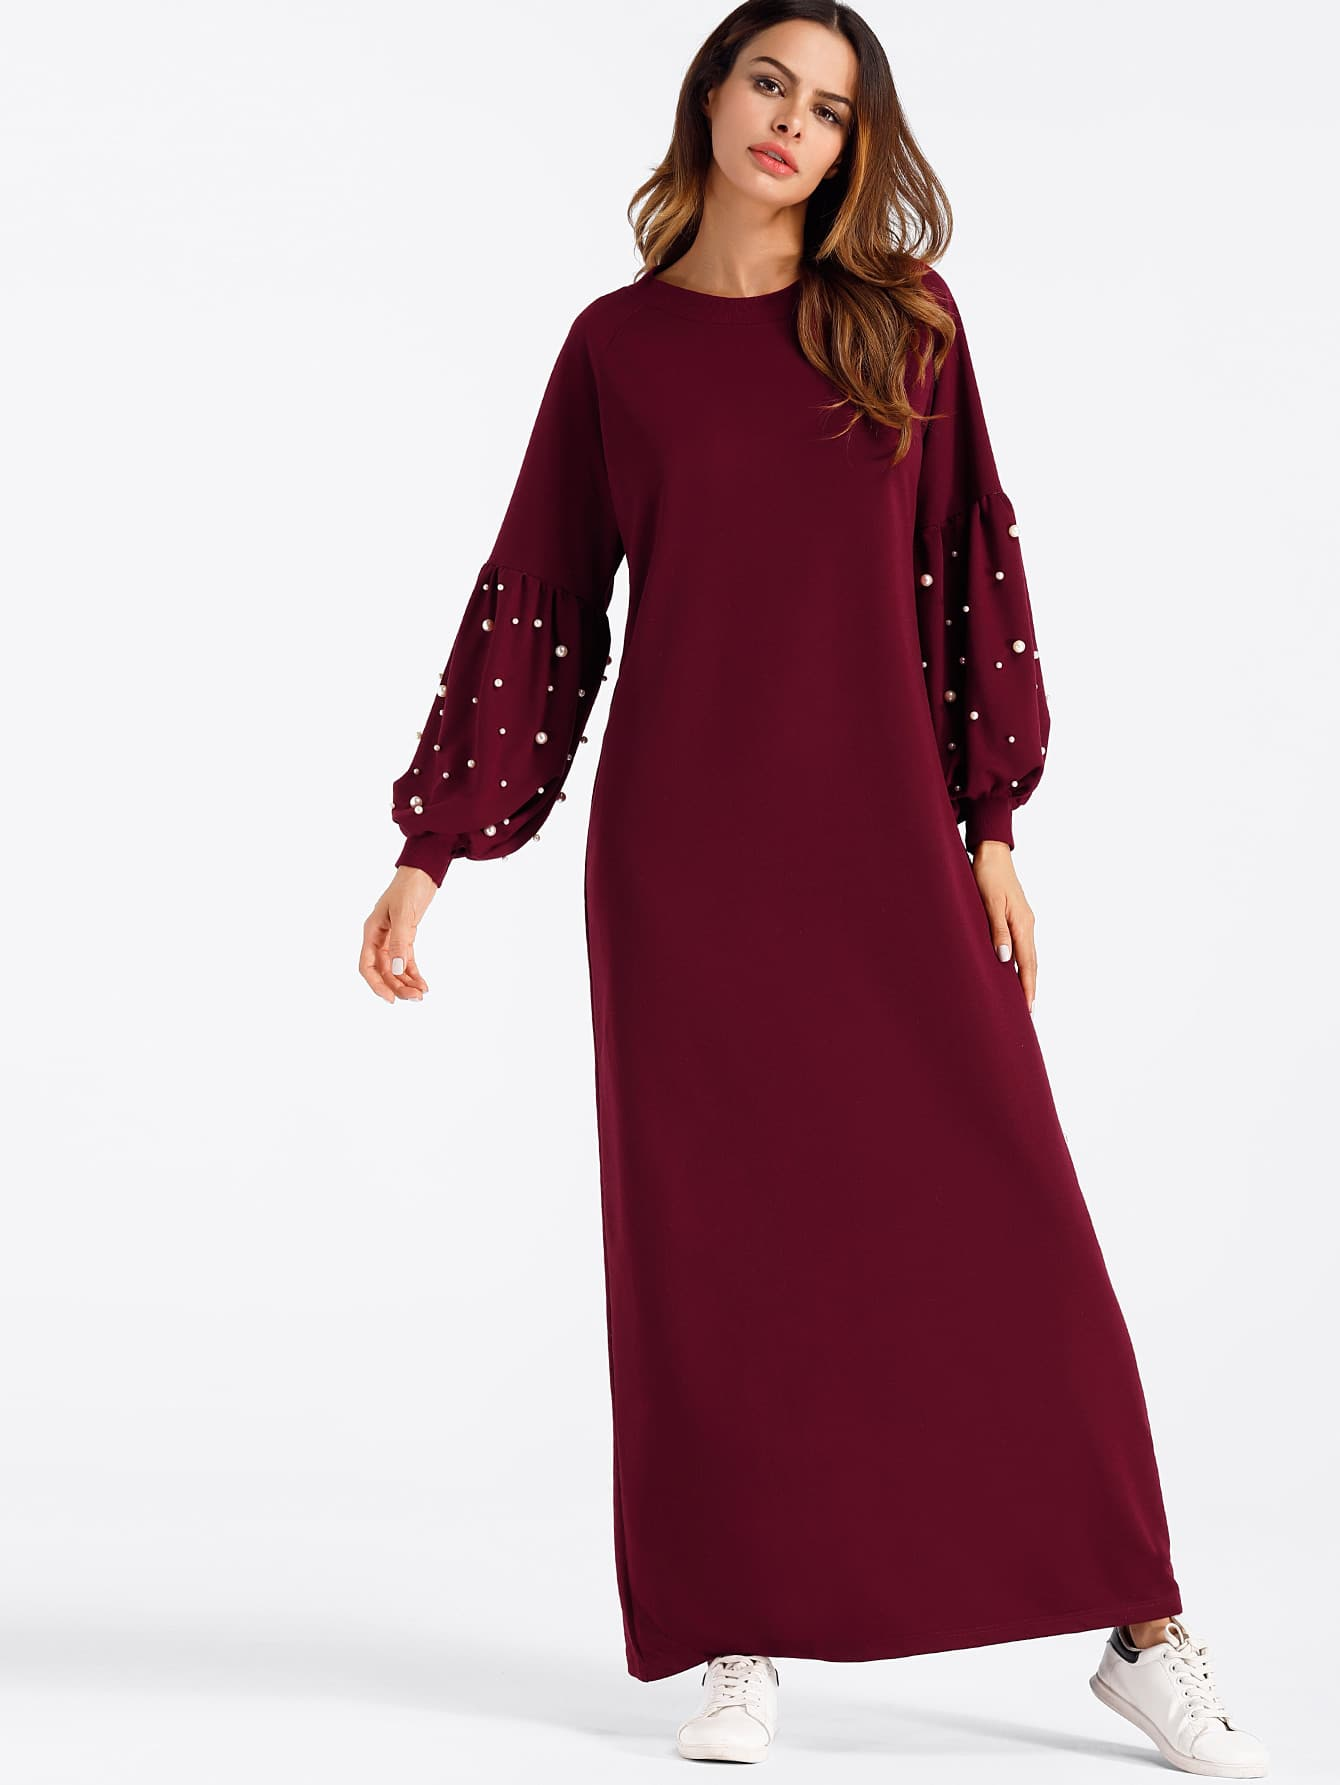 Lantern Sleeve Pearl Beaded Full Length Dress